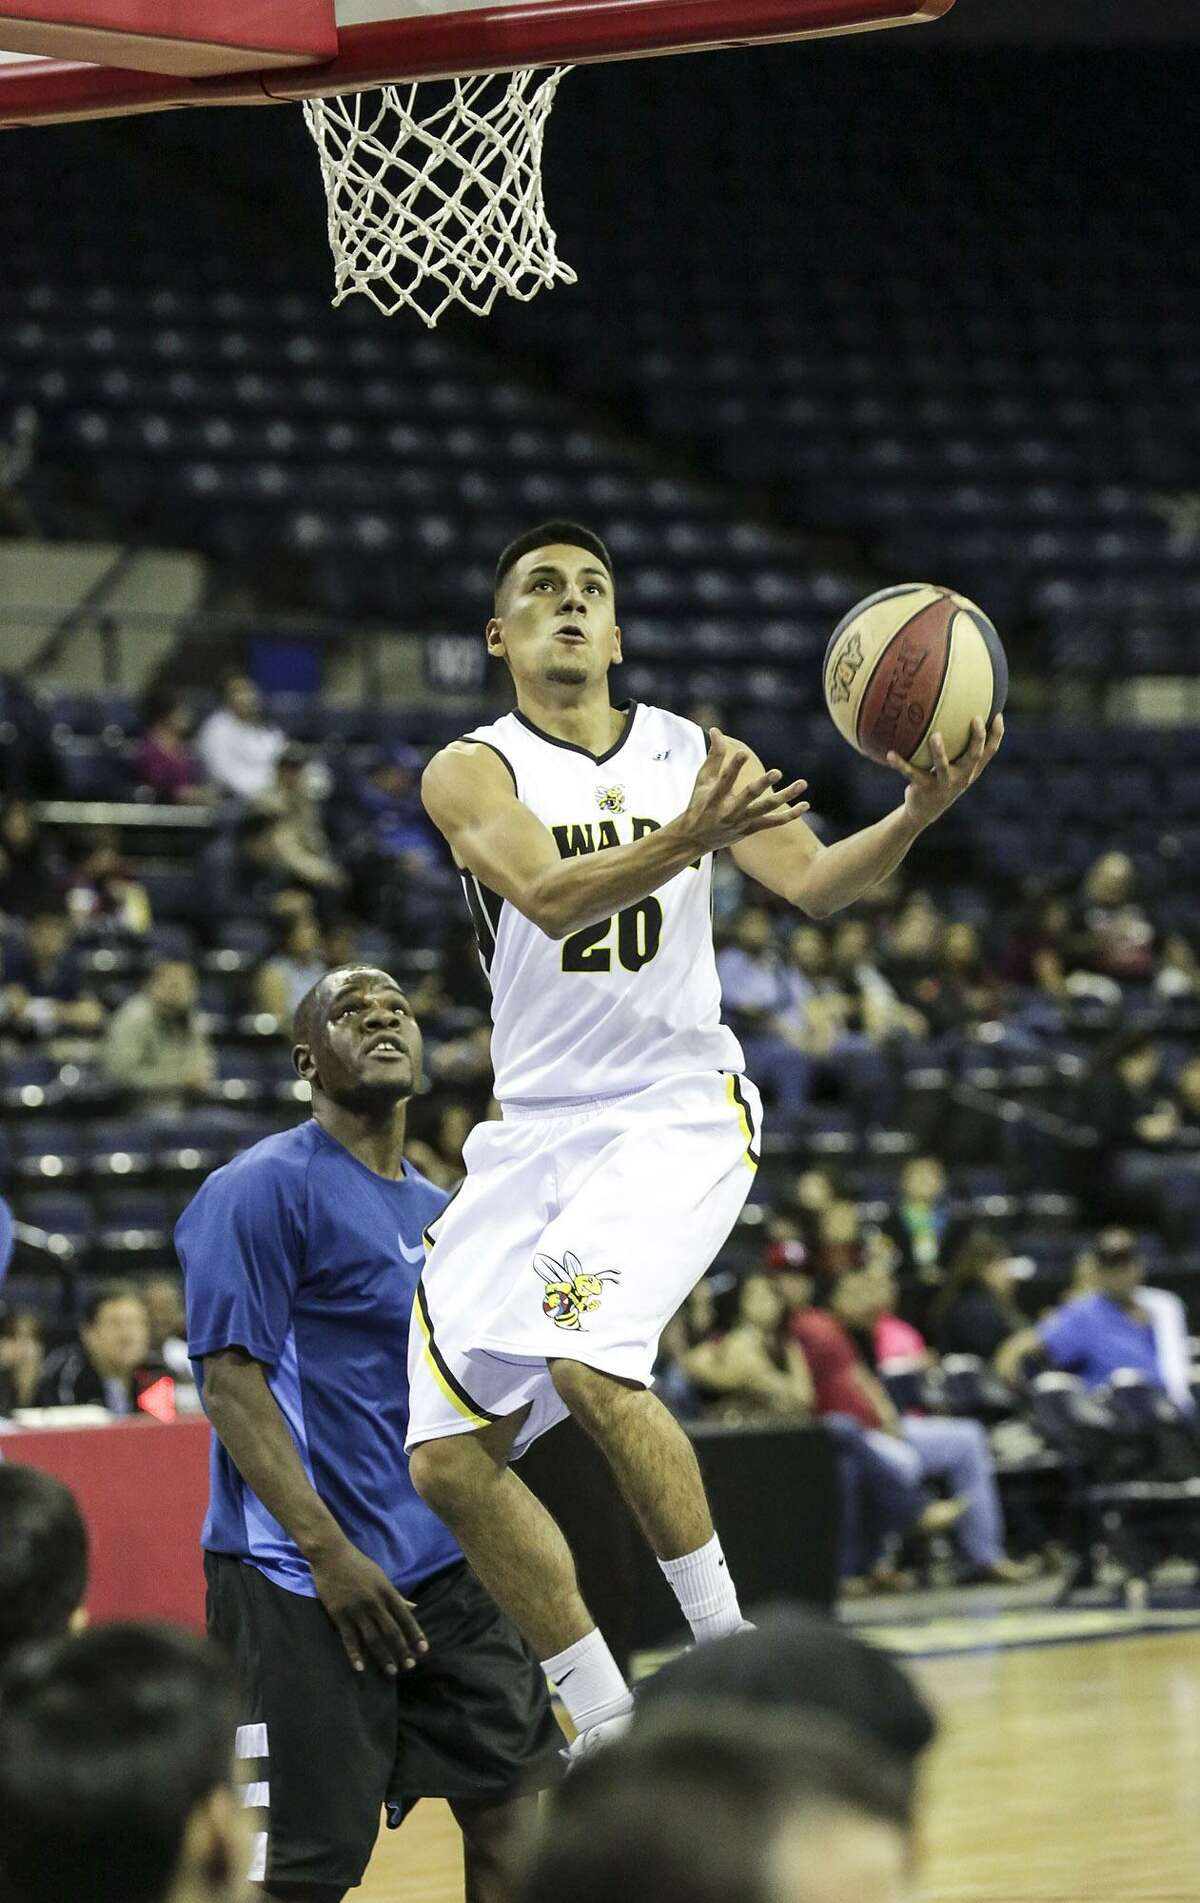 The Laredo Swarm have extended their online registration deadline by one day through Wednesday to tryout for the 2017-18 team. John Garcia is one of six players with local ties to play for the Swarm in two and a half years.